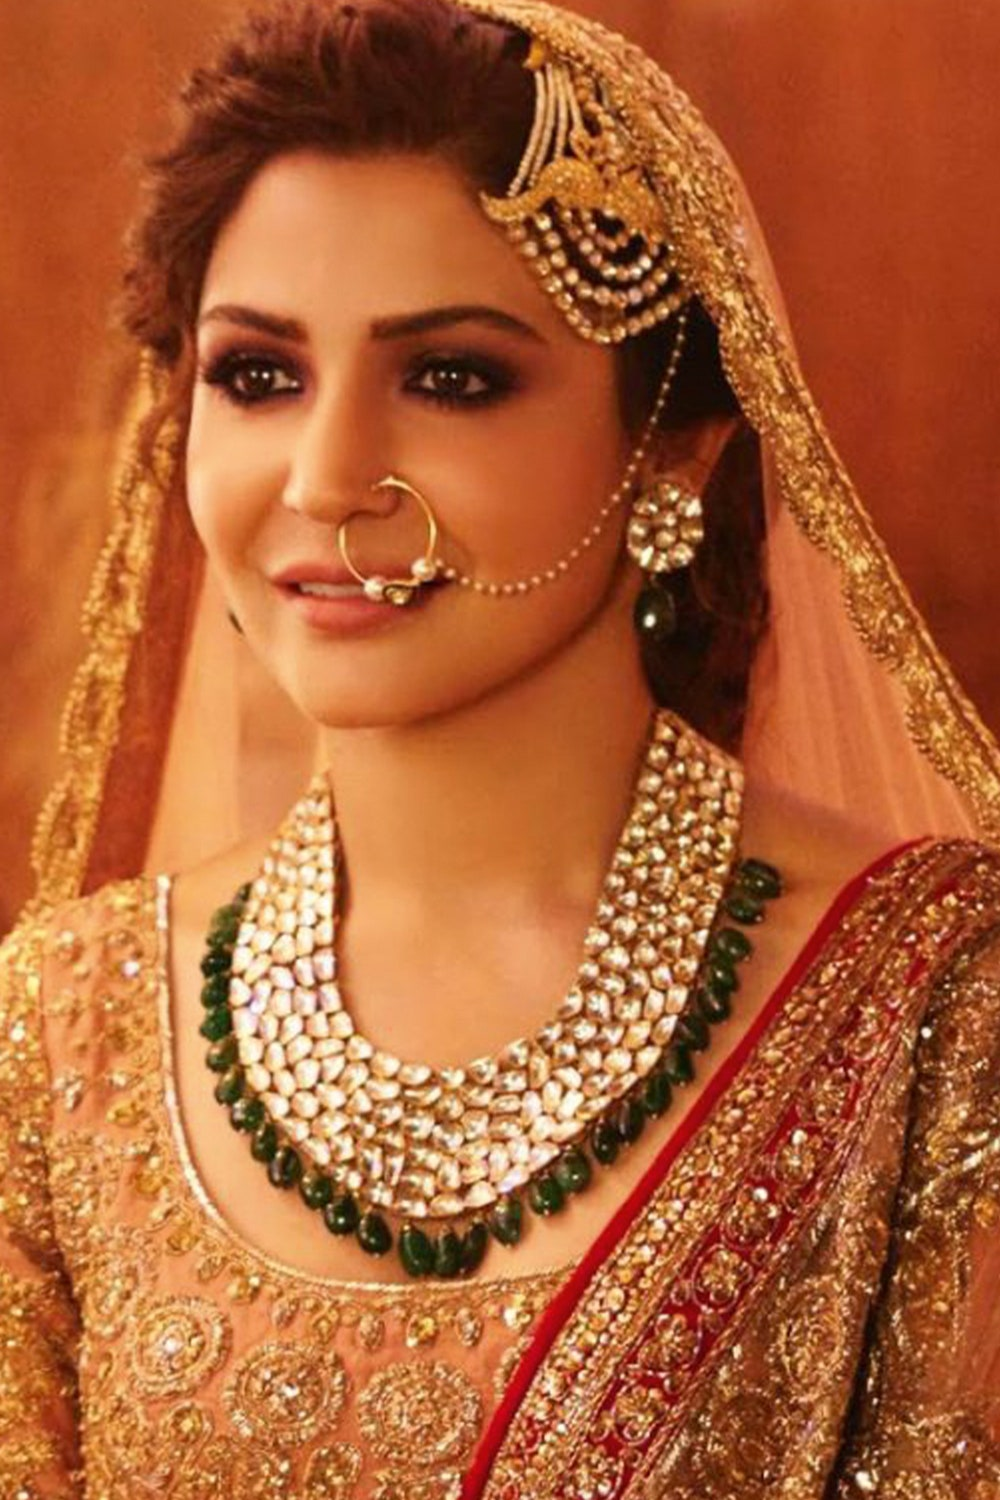 Muslim bridal jewellery Pasa or Jhumar plays a great role in enhancing the look of the bride.